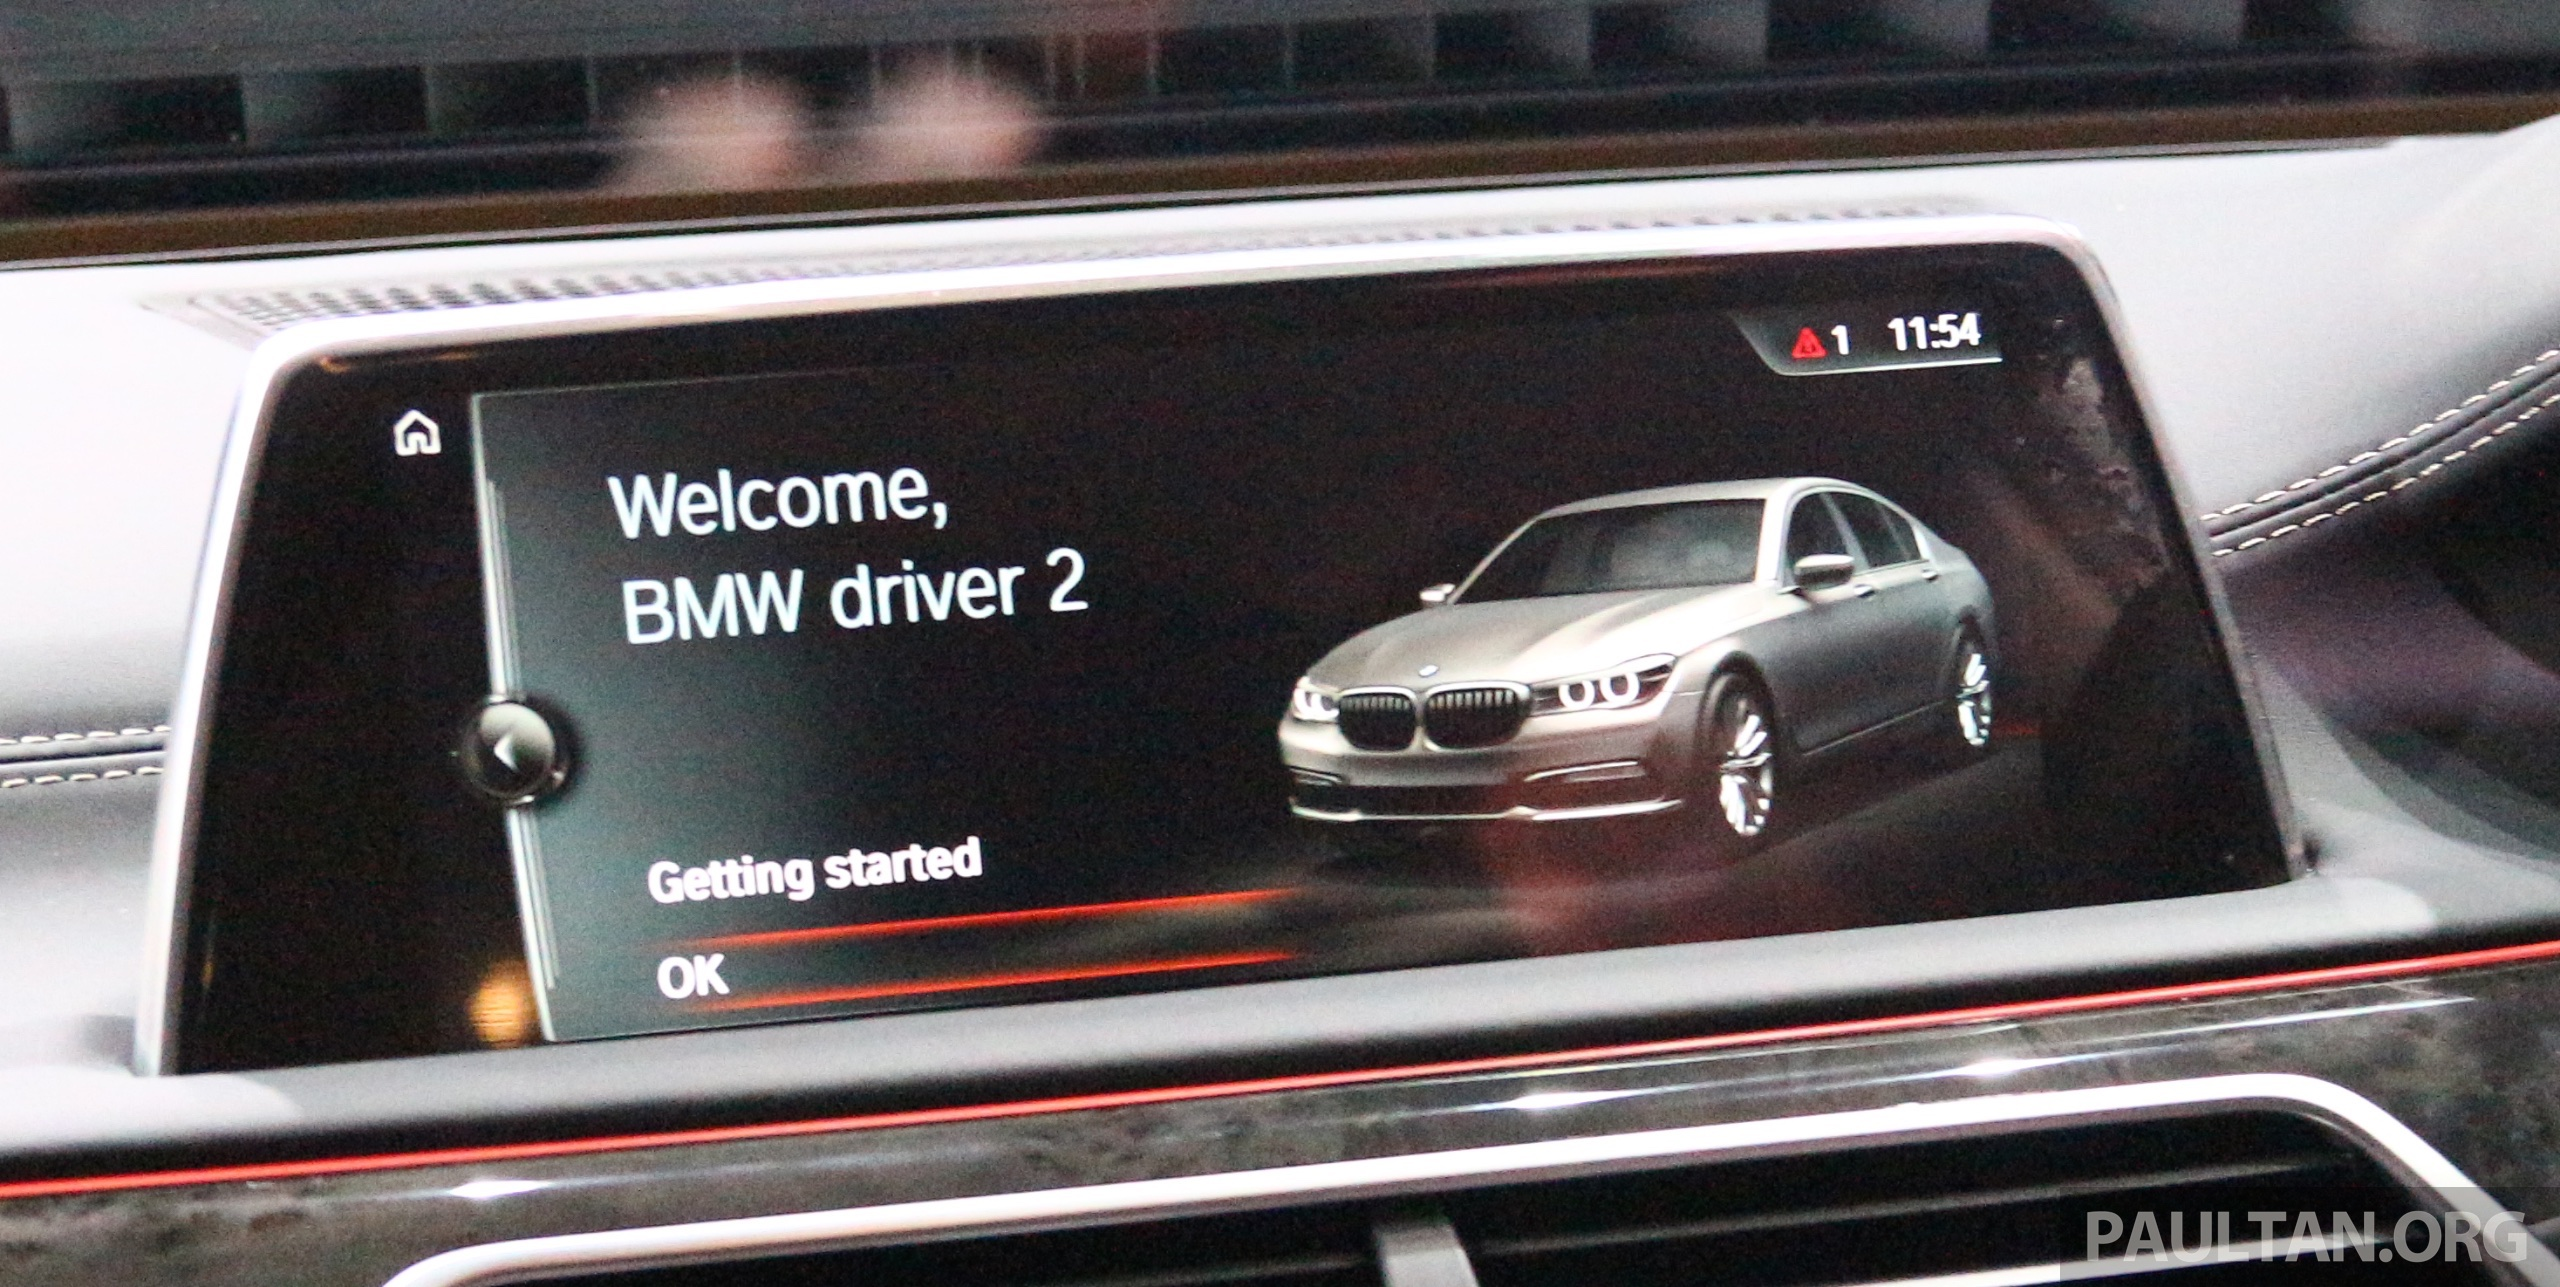 New Bmw 7 Series >> New G11 BMW 7 Series launched in Malaysia – 2.0 turbo 4cyl 730Li and 740Li, from RM599k Paul Tan ...